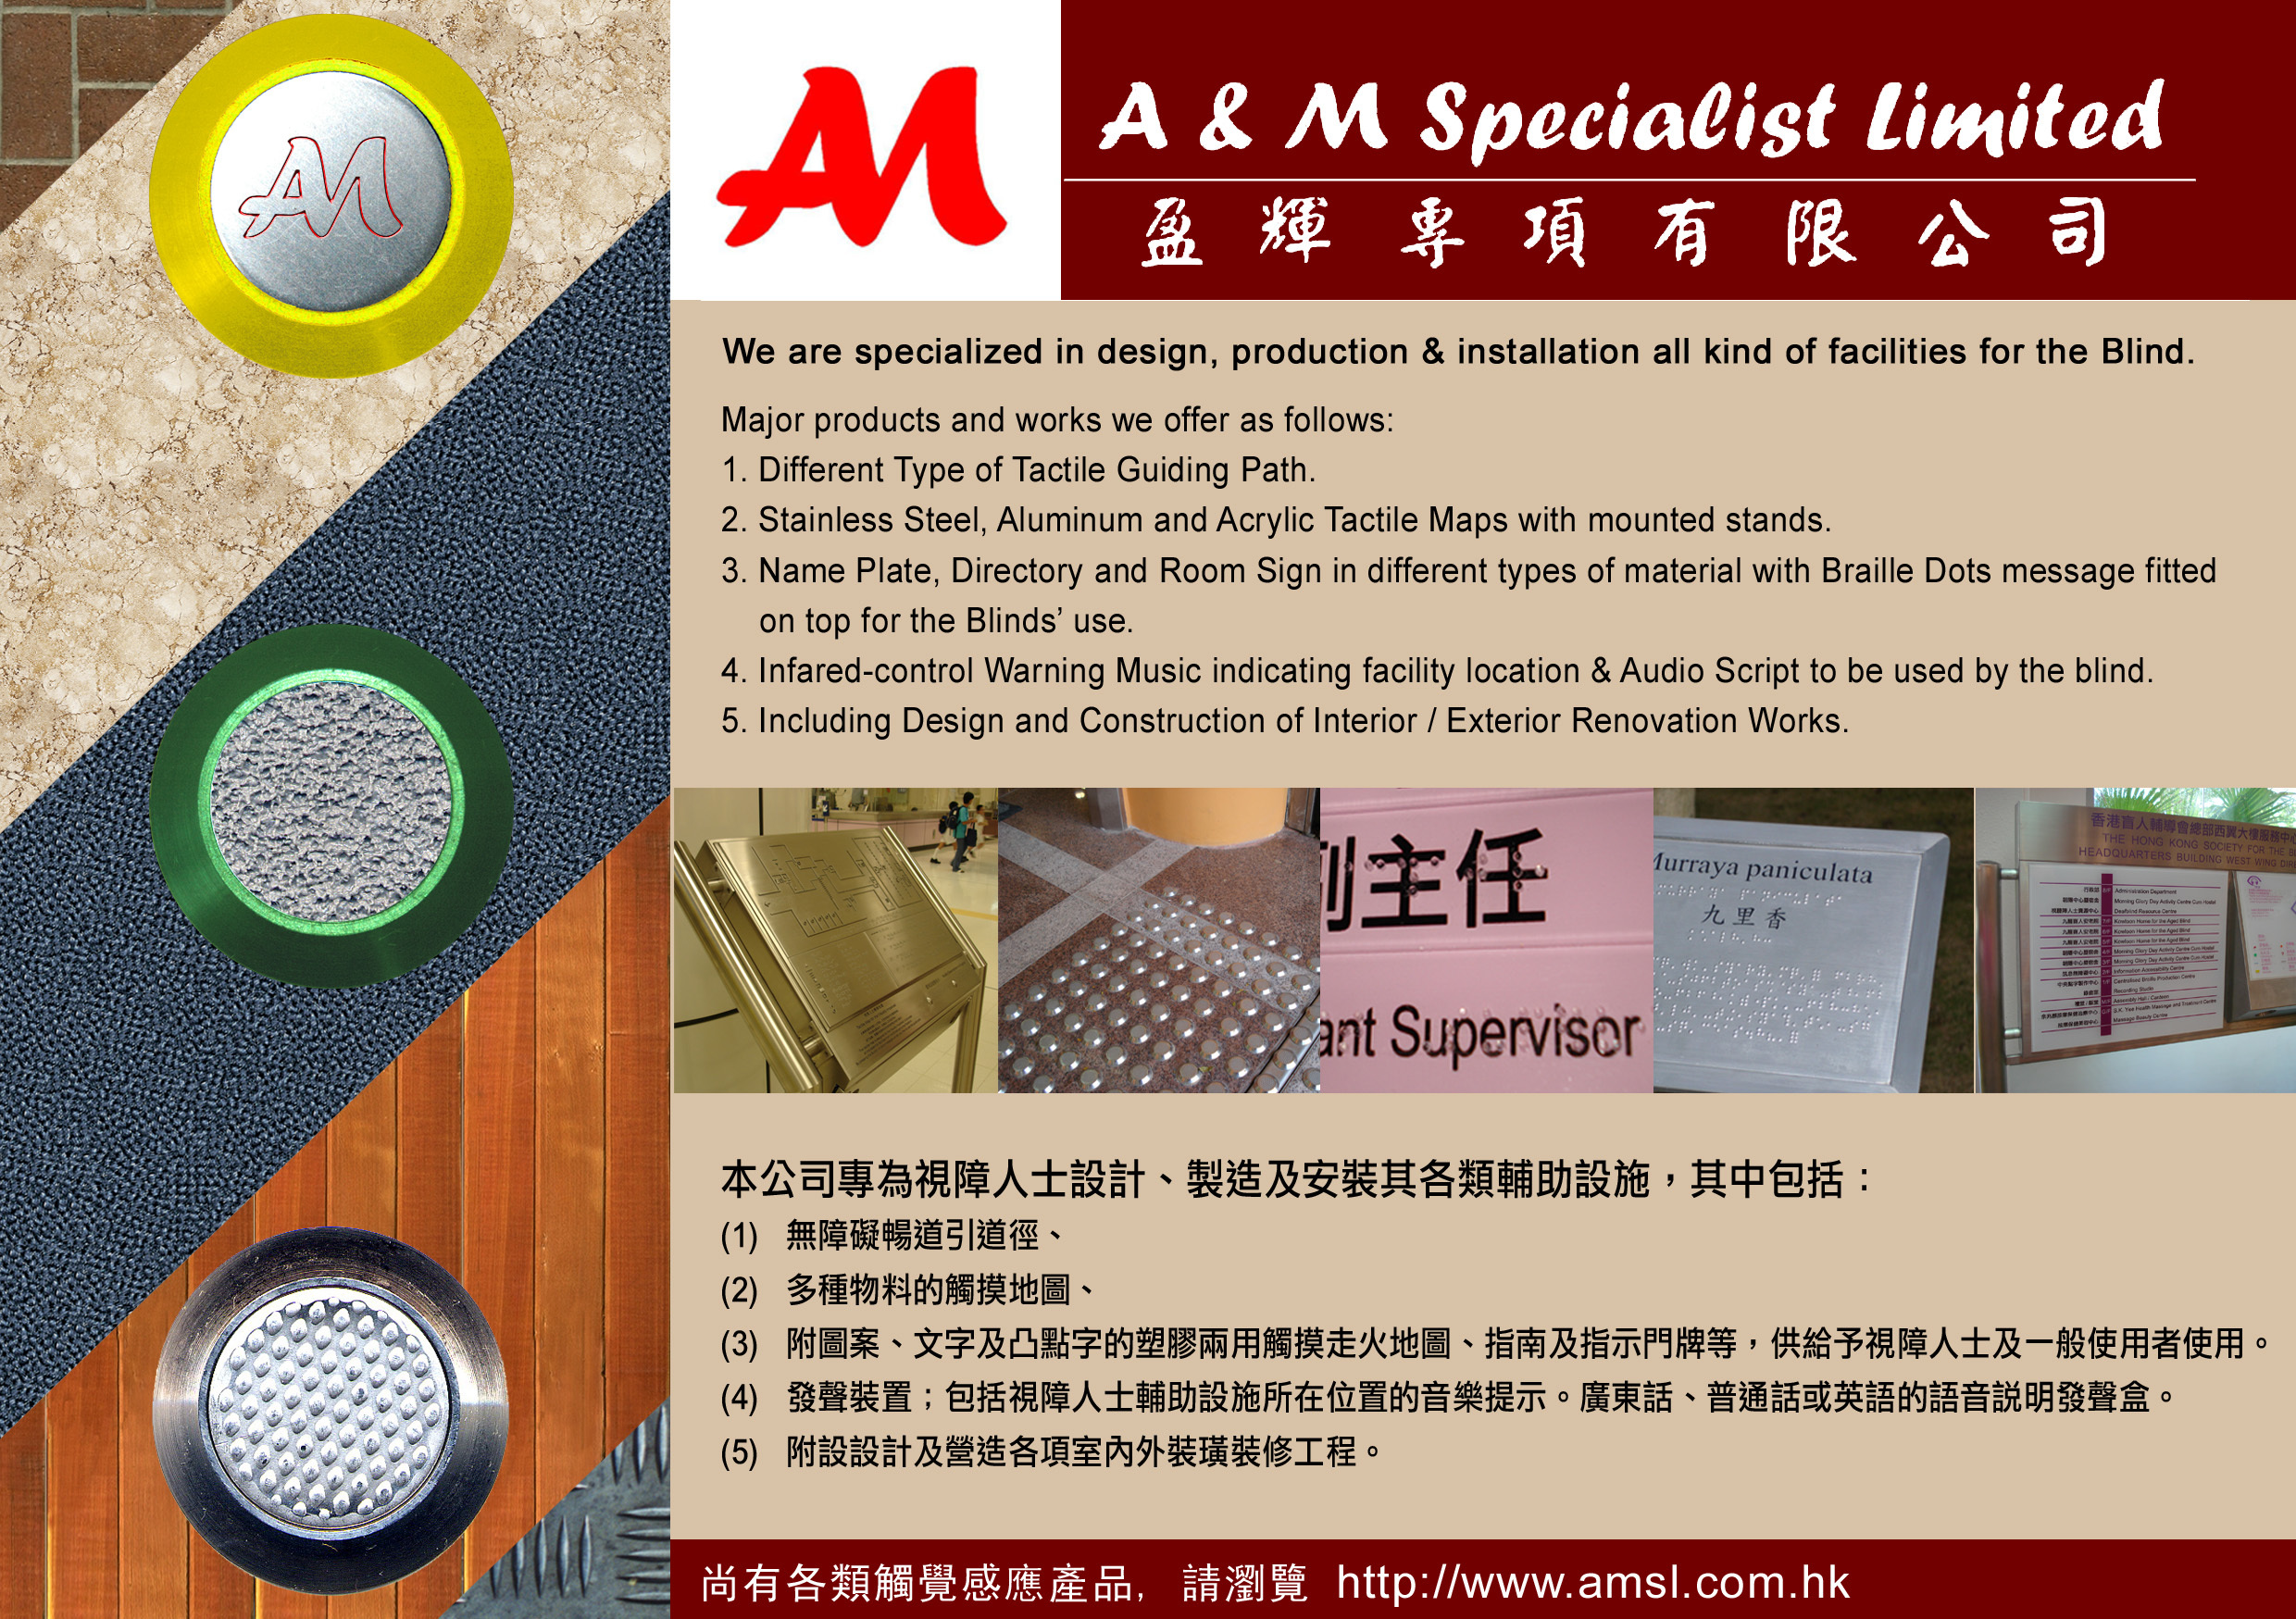 A&M Specialist Limited